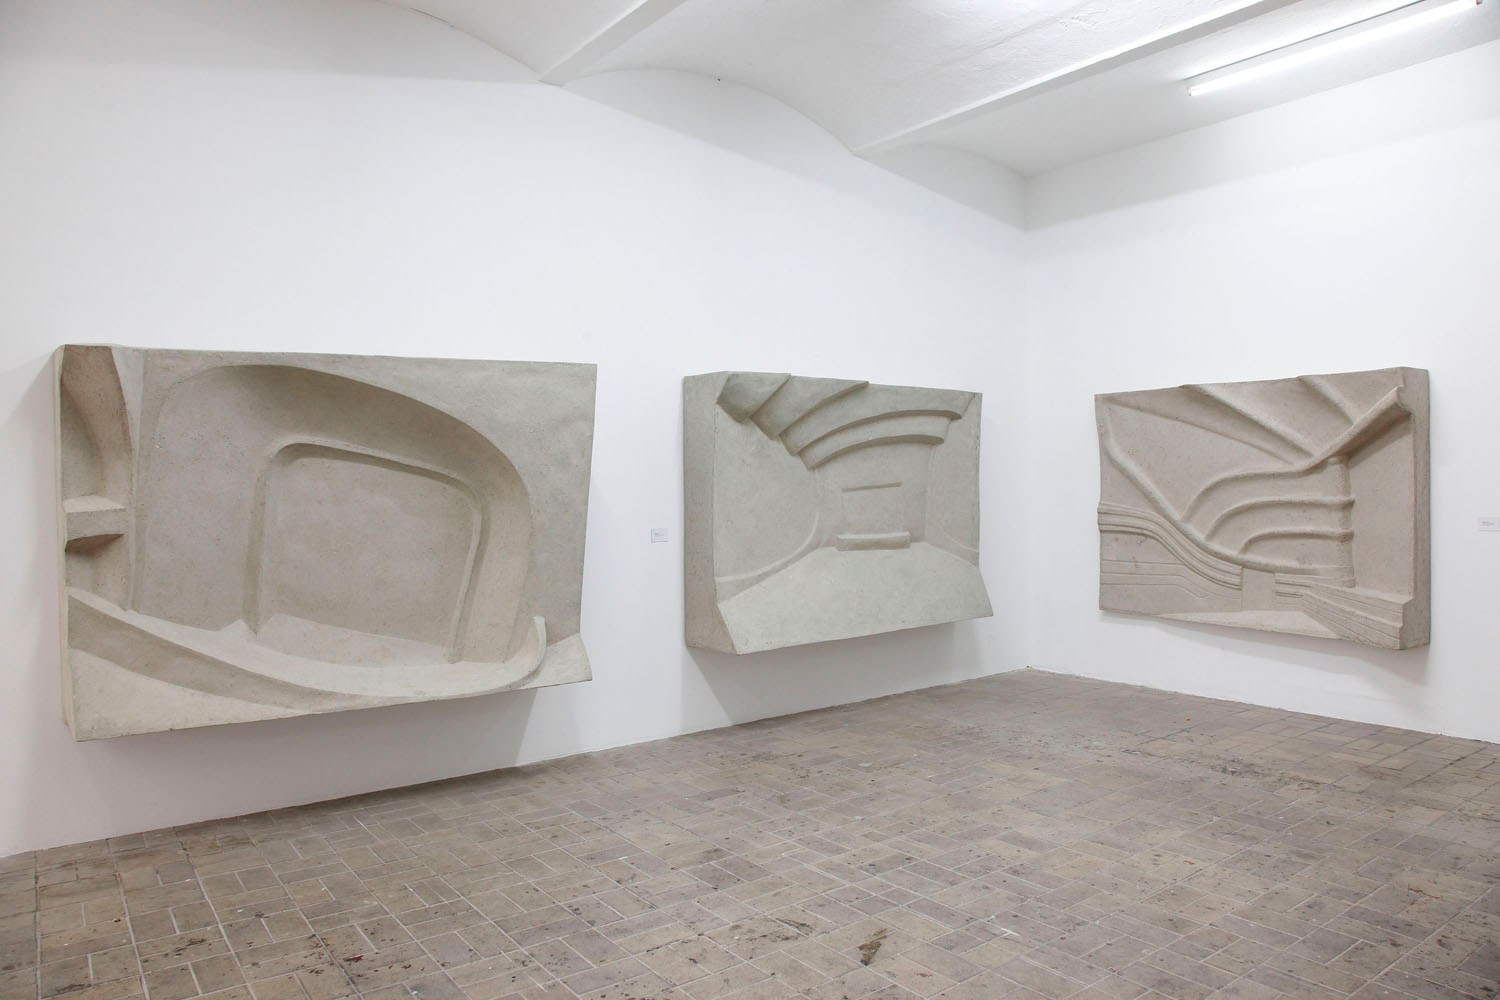 Hudson; Odeon; Les Folies-Dramatiques, ca. 150cm x 225cm x 40cm each, paper mâché, resin and aluminium, 2010, 2011<br />Installation view KW Institute for Contemporary Art, Berlin